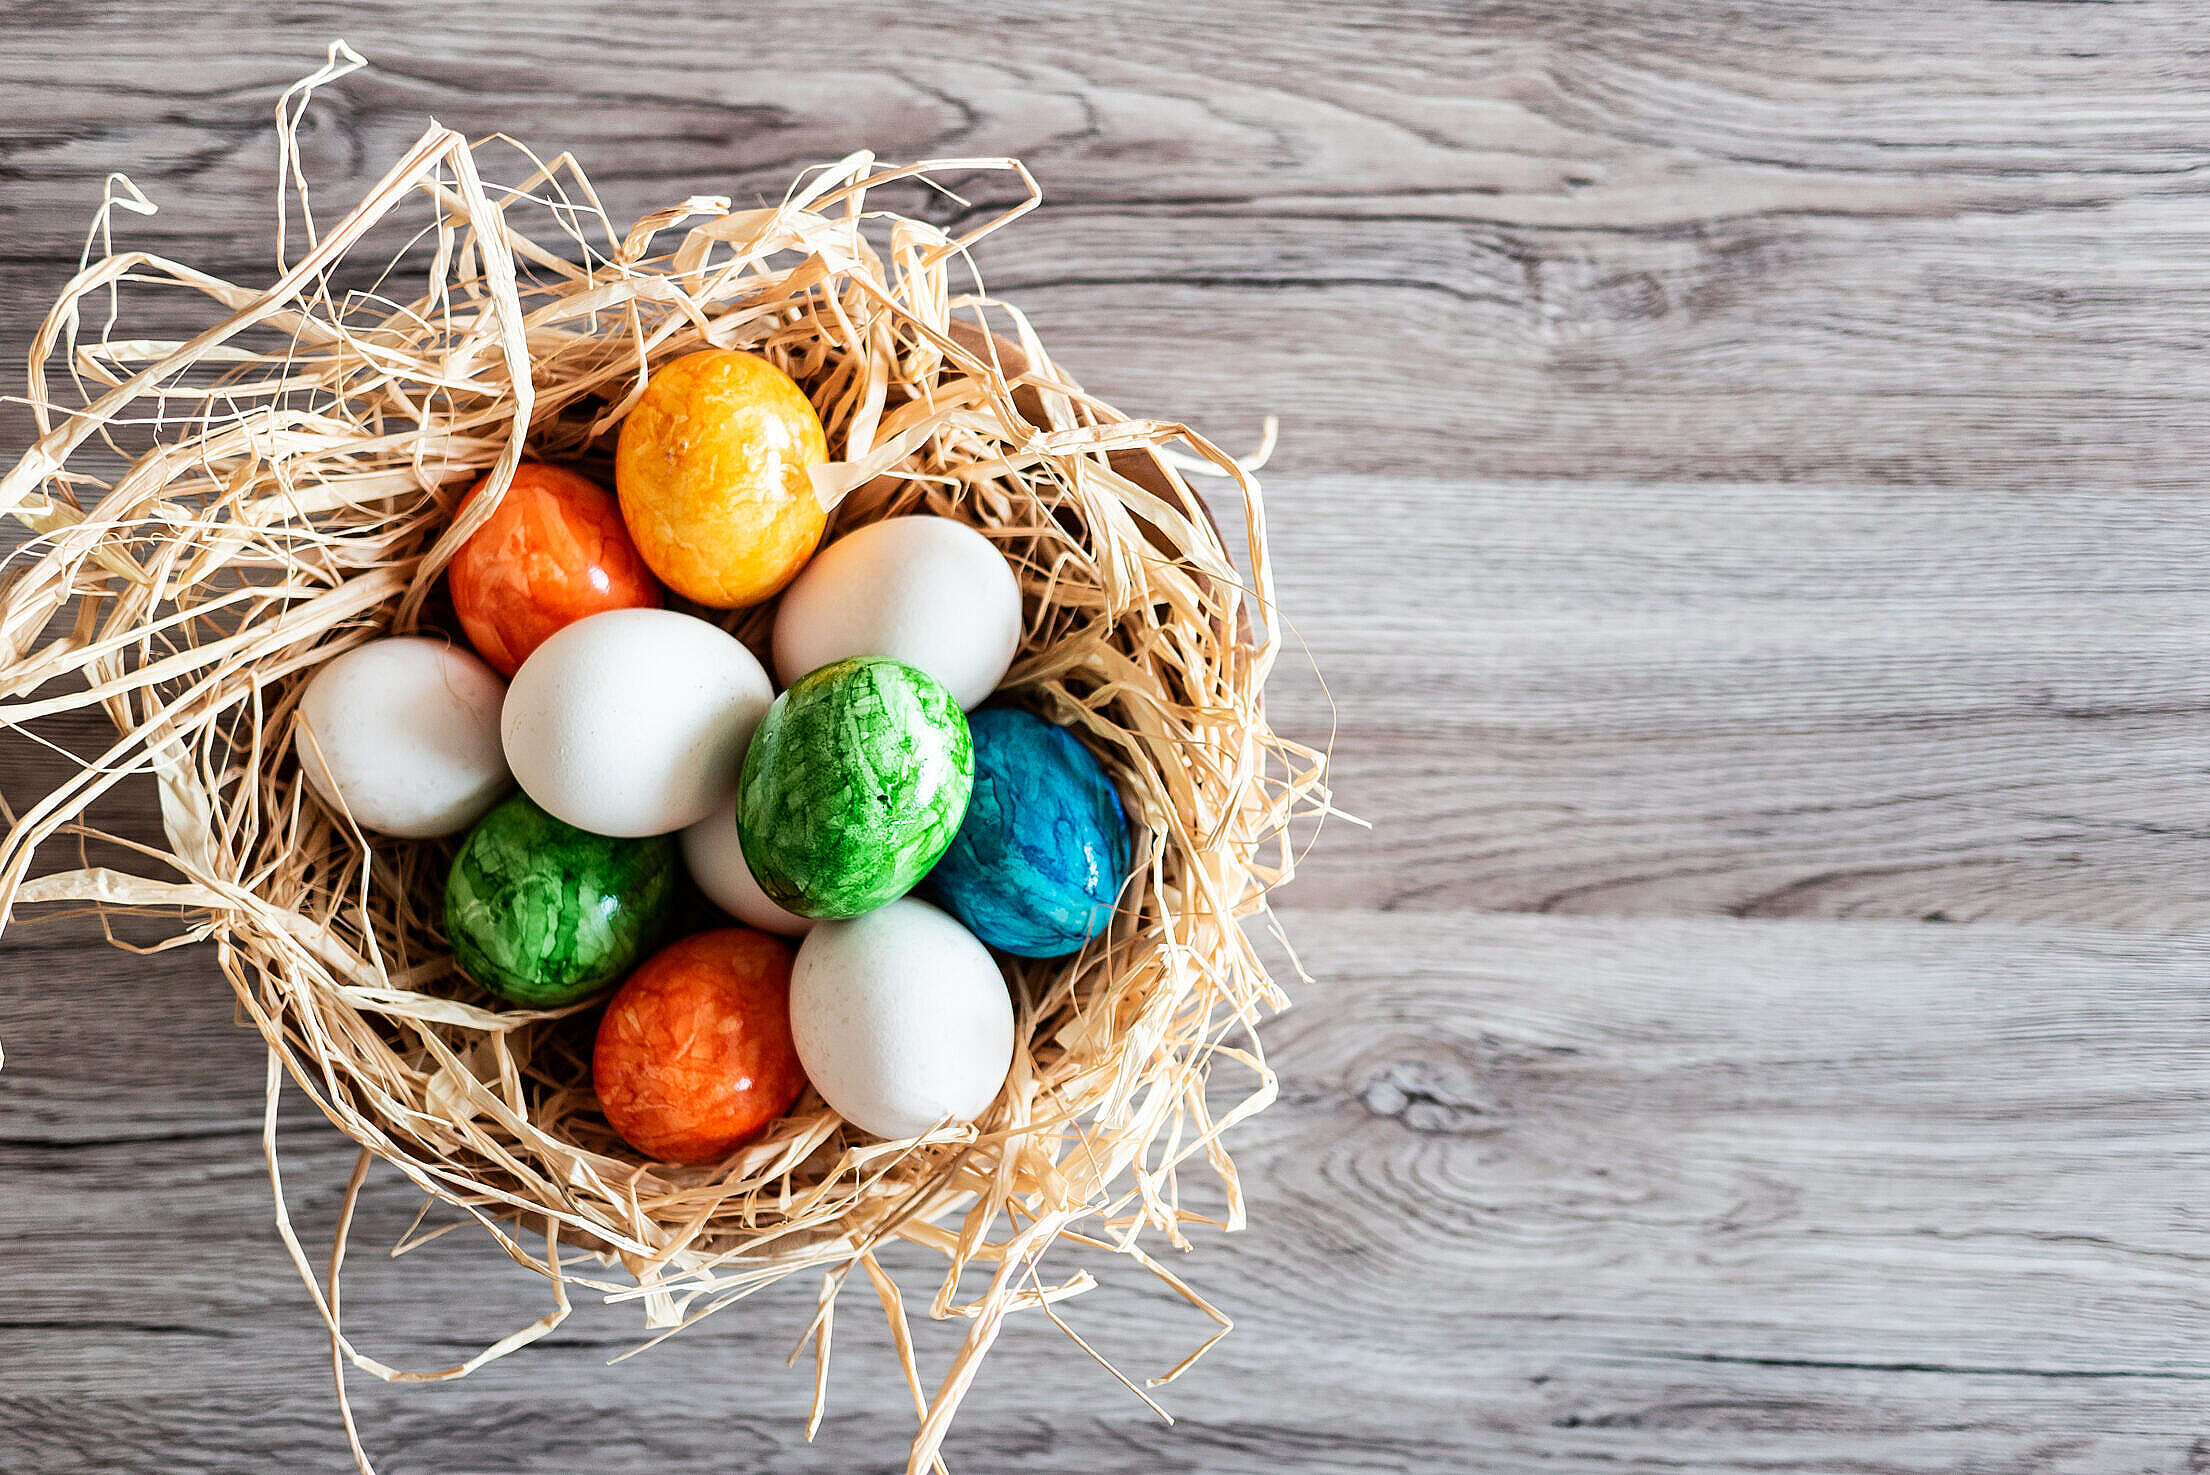 Easter Holidays Eggs and Wooden Background Free Stock Photo